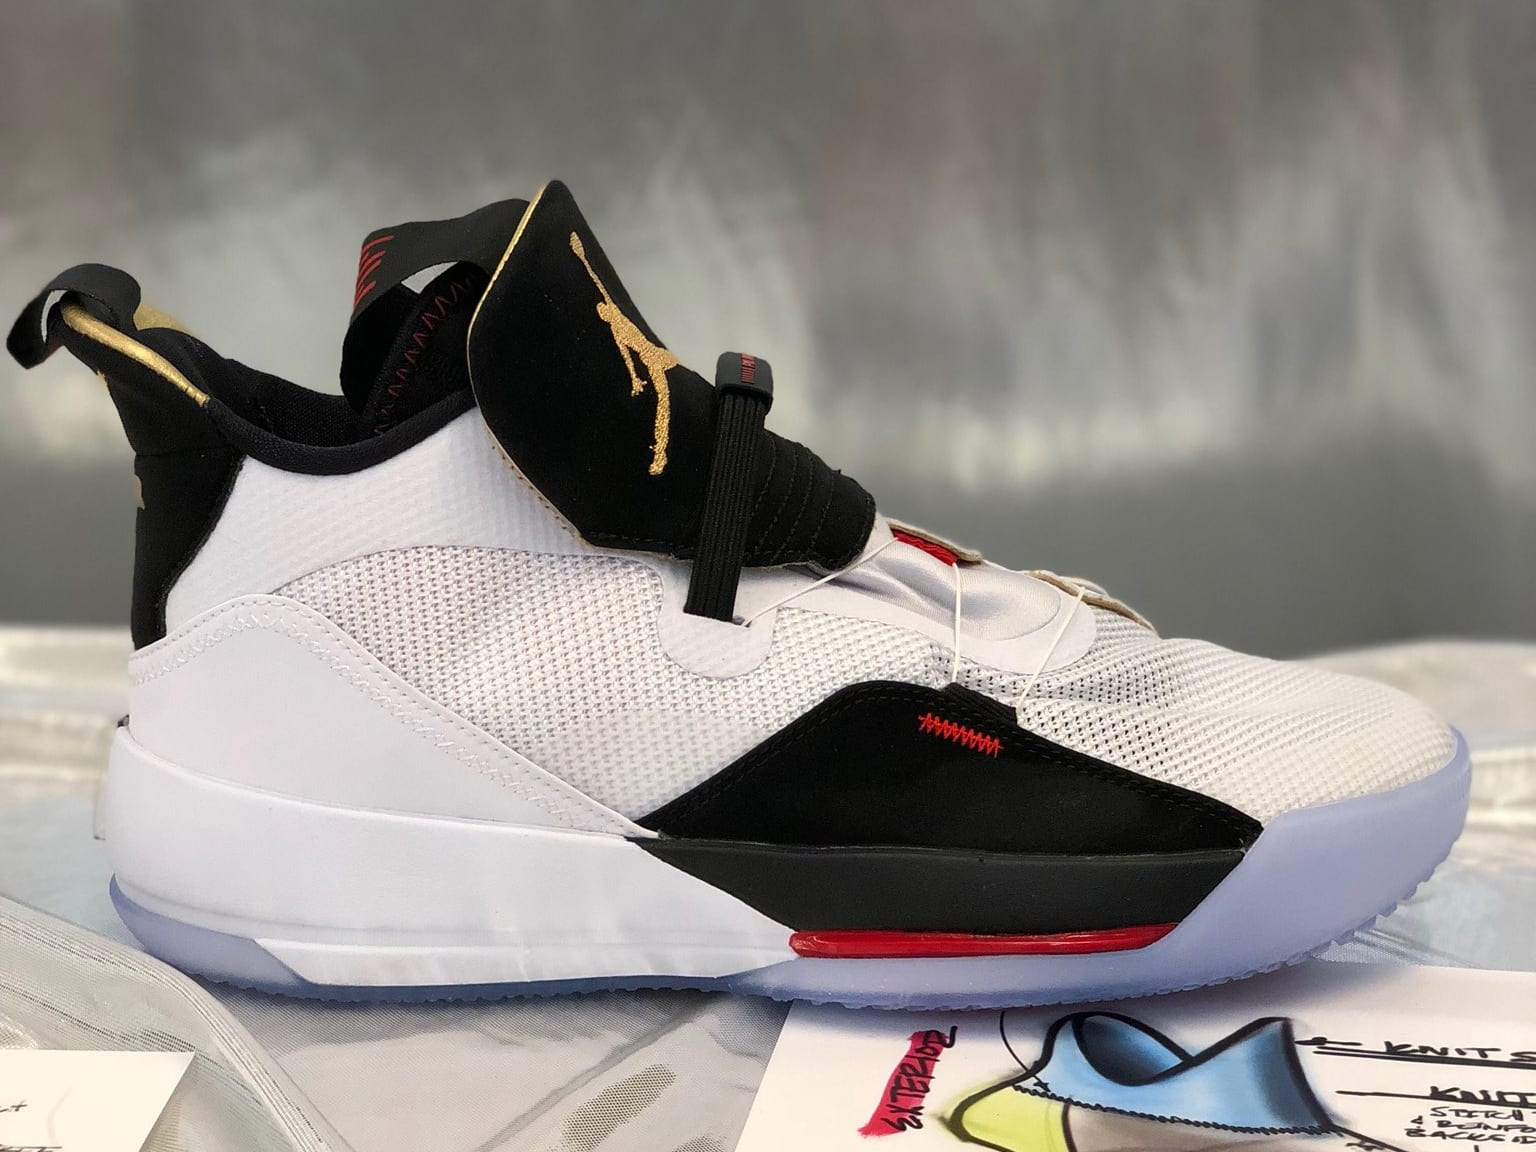 Air Jordan 33 XXXIII Release Date   Sole Collector Future of Flight